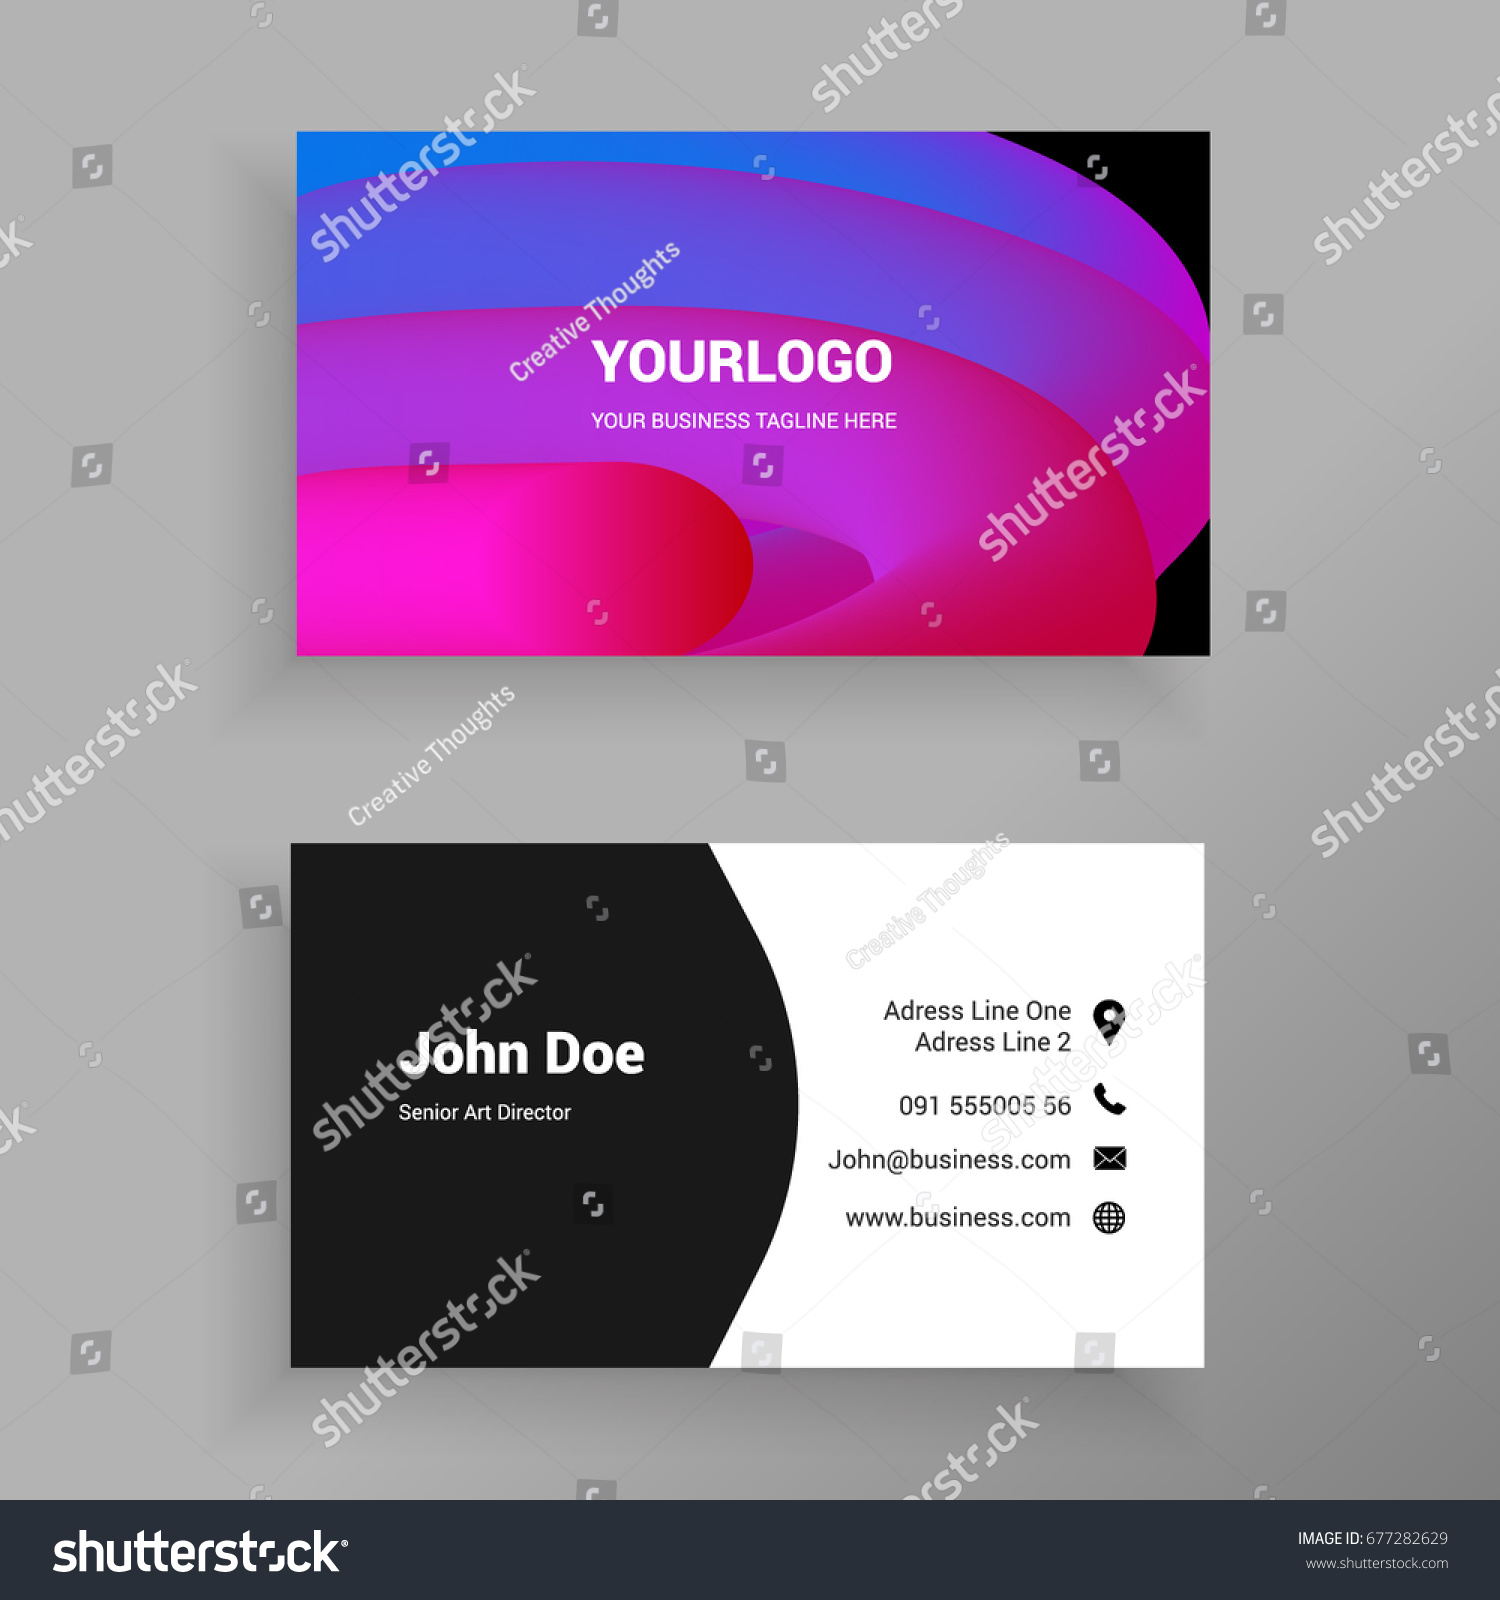 Colorful 3d Blend Minimal Trendy Business Stock Vector 677282629 ...